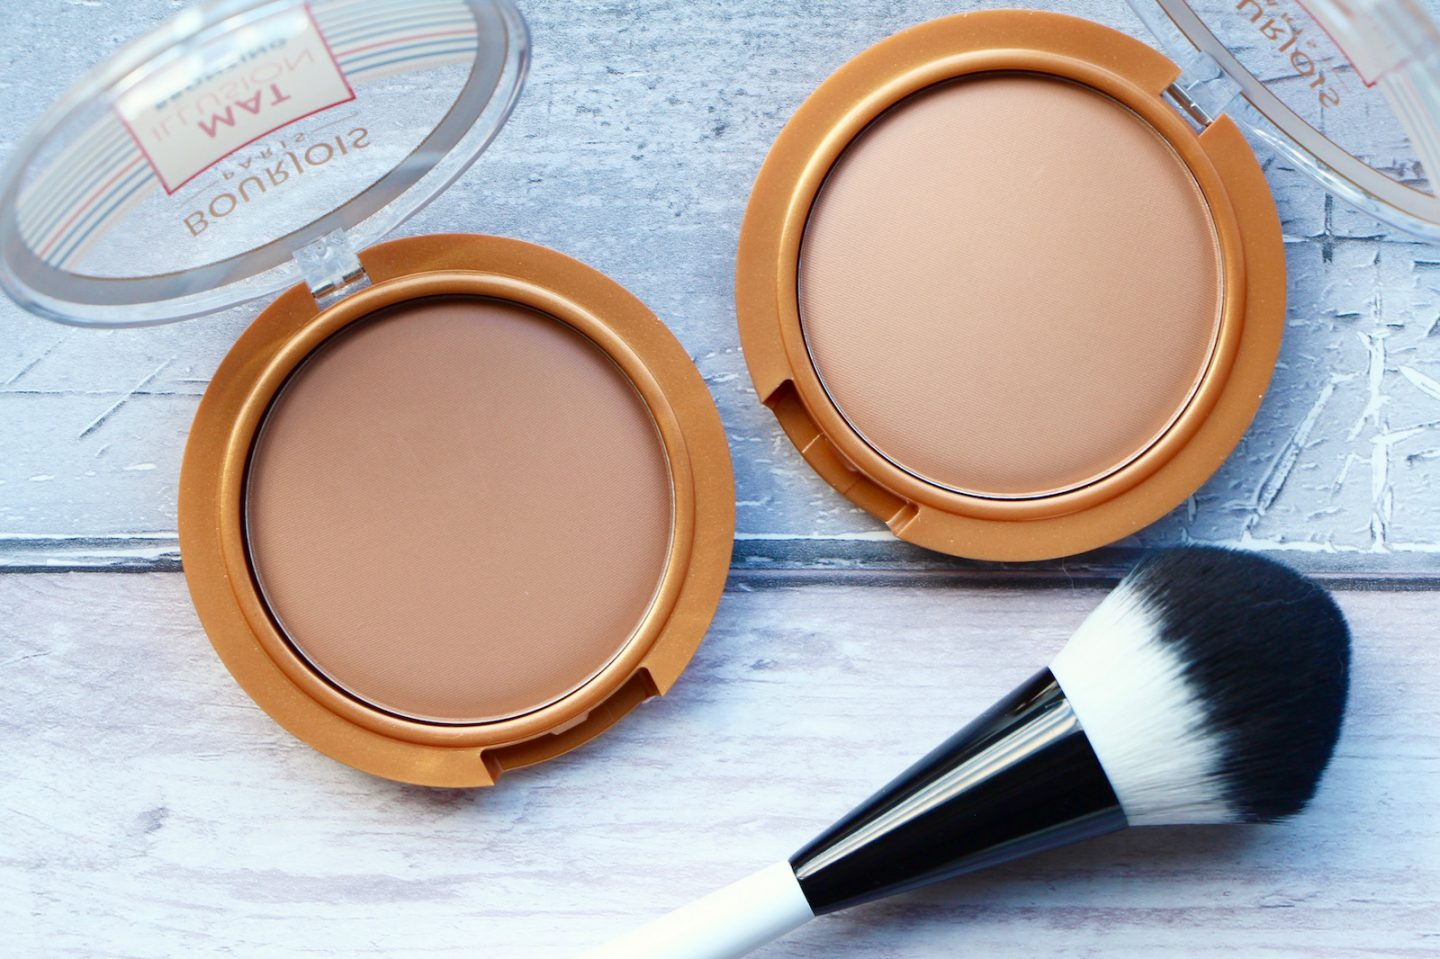 Bourjois Powder Mat Illusion Bronzer in Fair